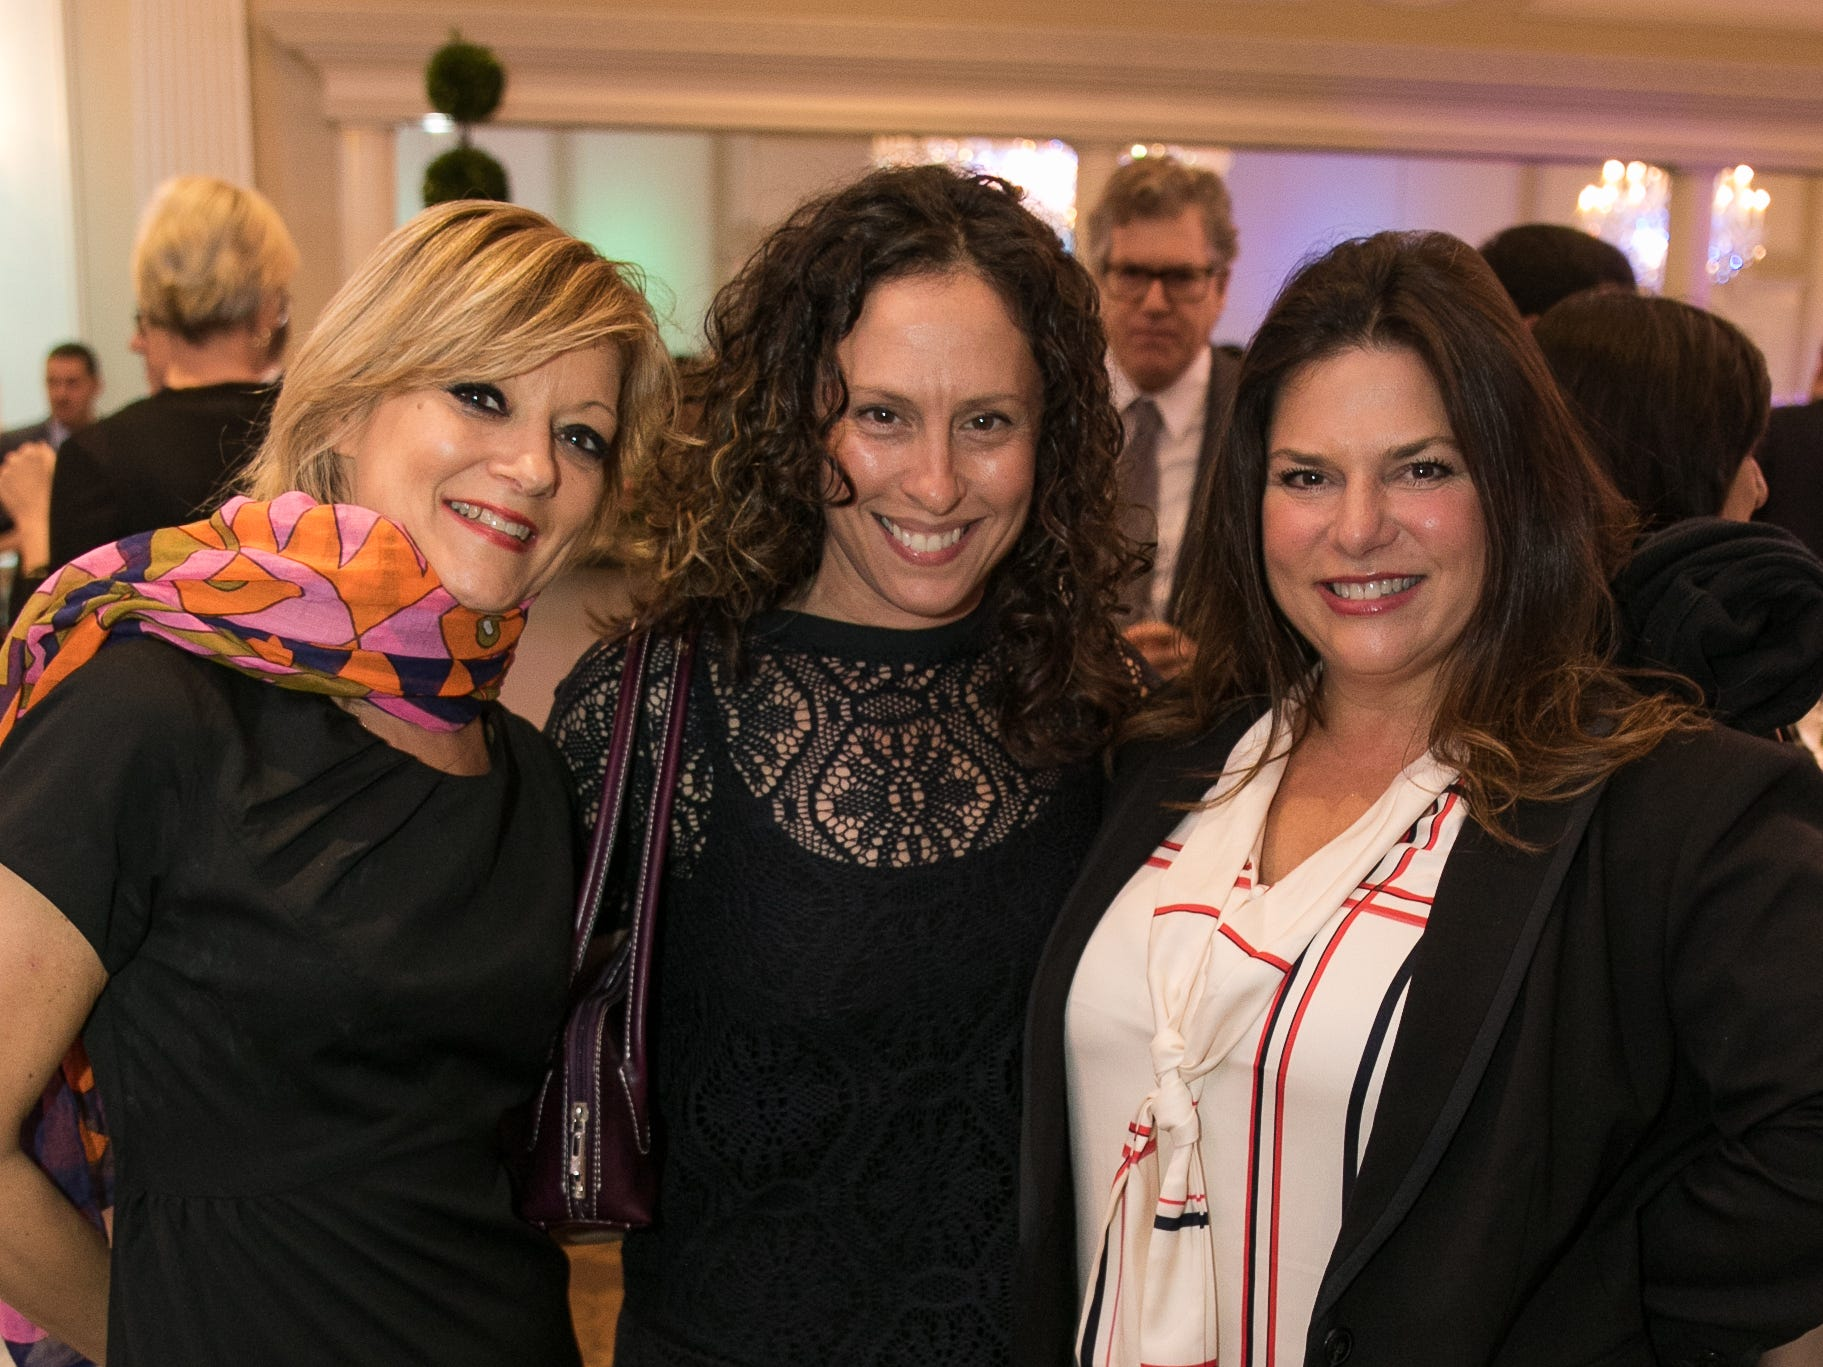 Geri Meyer, Stefanie Nelson,  Cindy Massoff.Bergen Family Center celebrated 120 years of service with dinner and a silent auction at Th e Rockleigh Country Club.11/1/2018